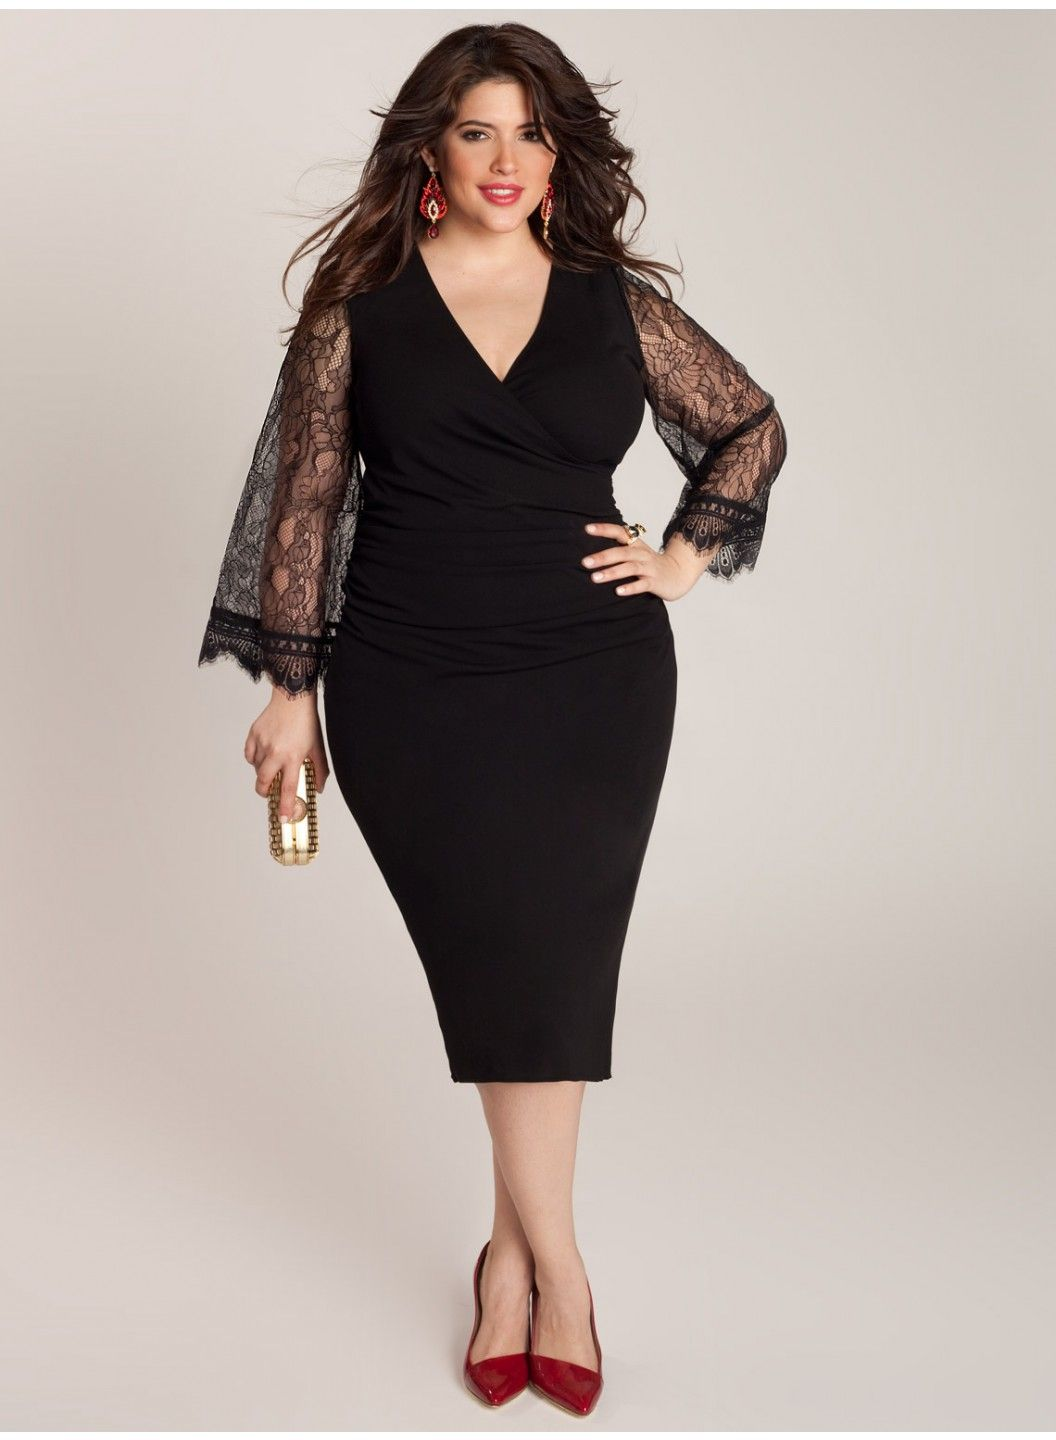 1000  images about Plus size womens on Pinterest  Plus size ...